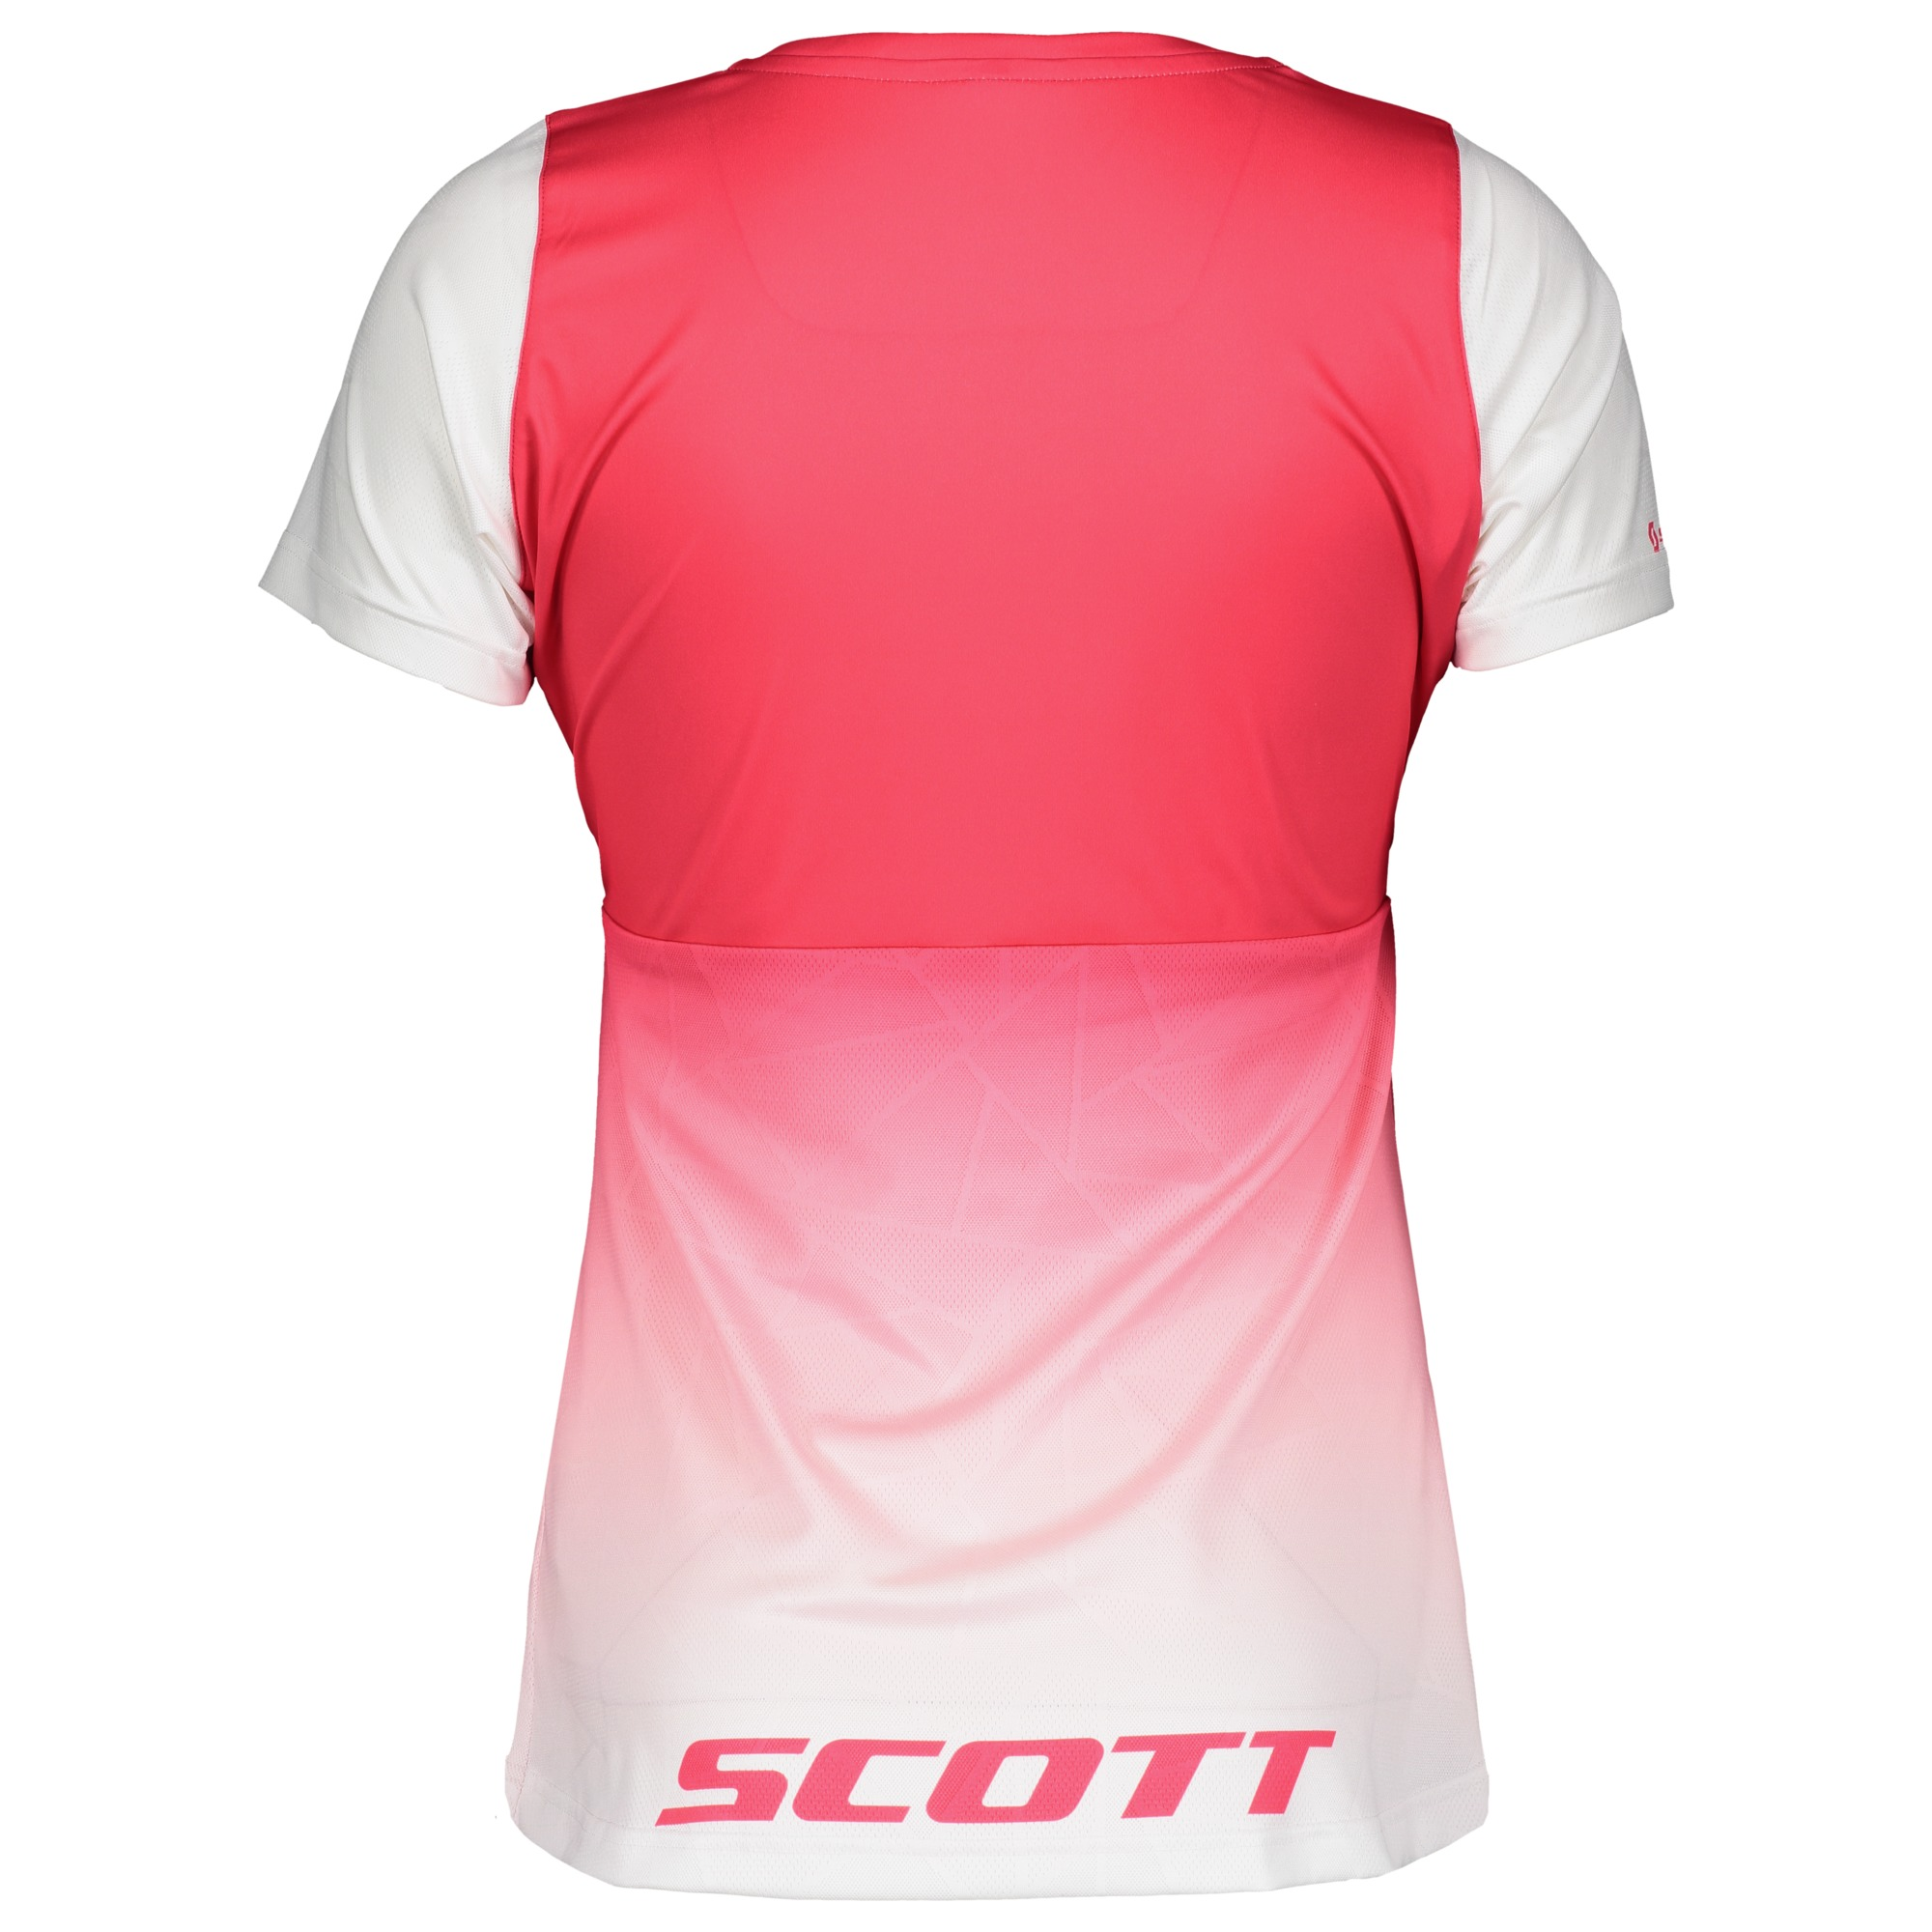 Maglia da donna SCOTT Trail Tech mc